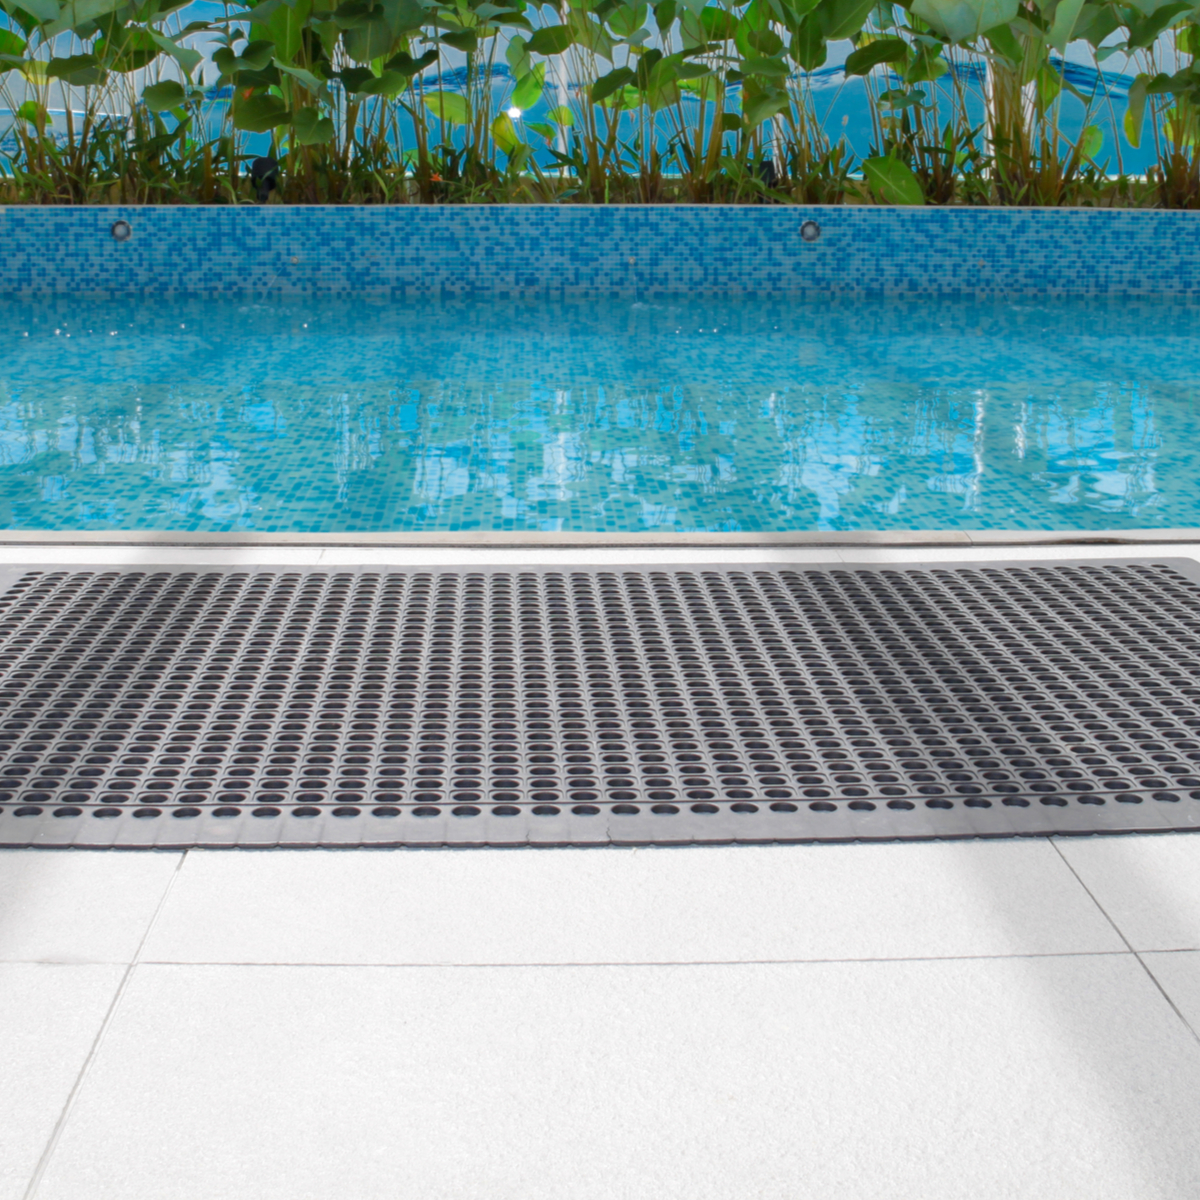 3 Reasons Every Business Needs Commercial Floor Mats ...